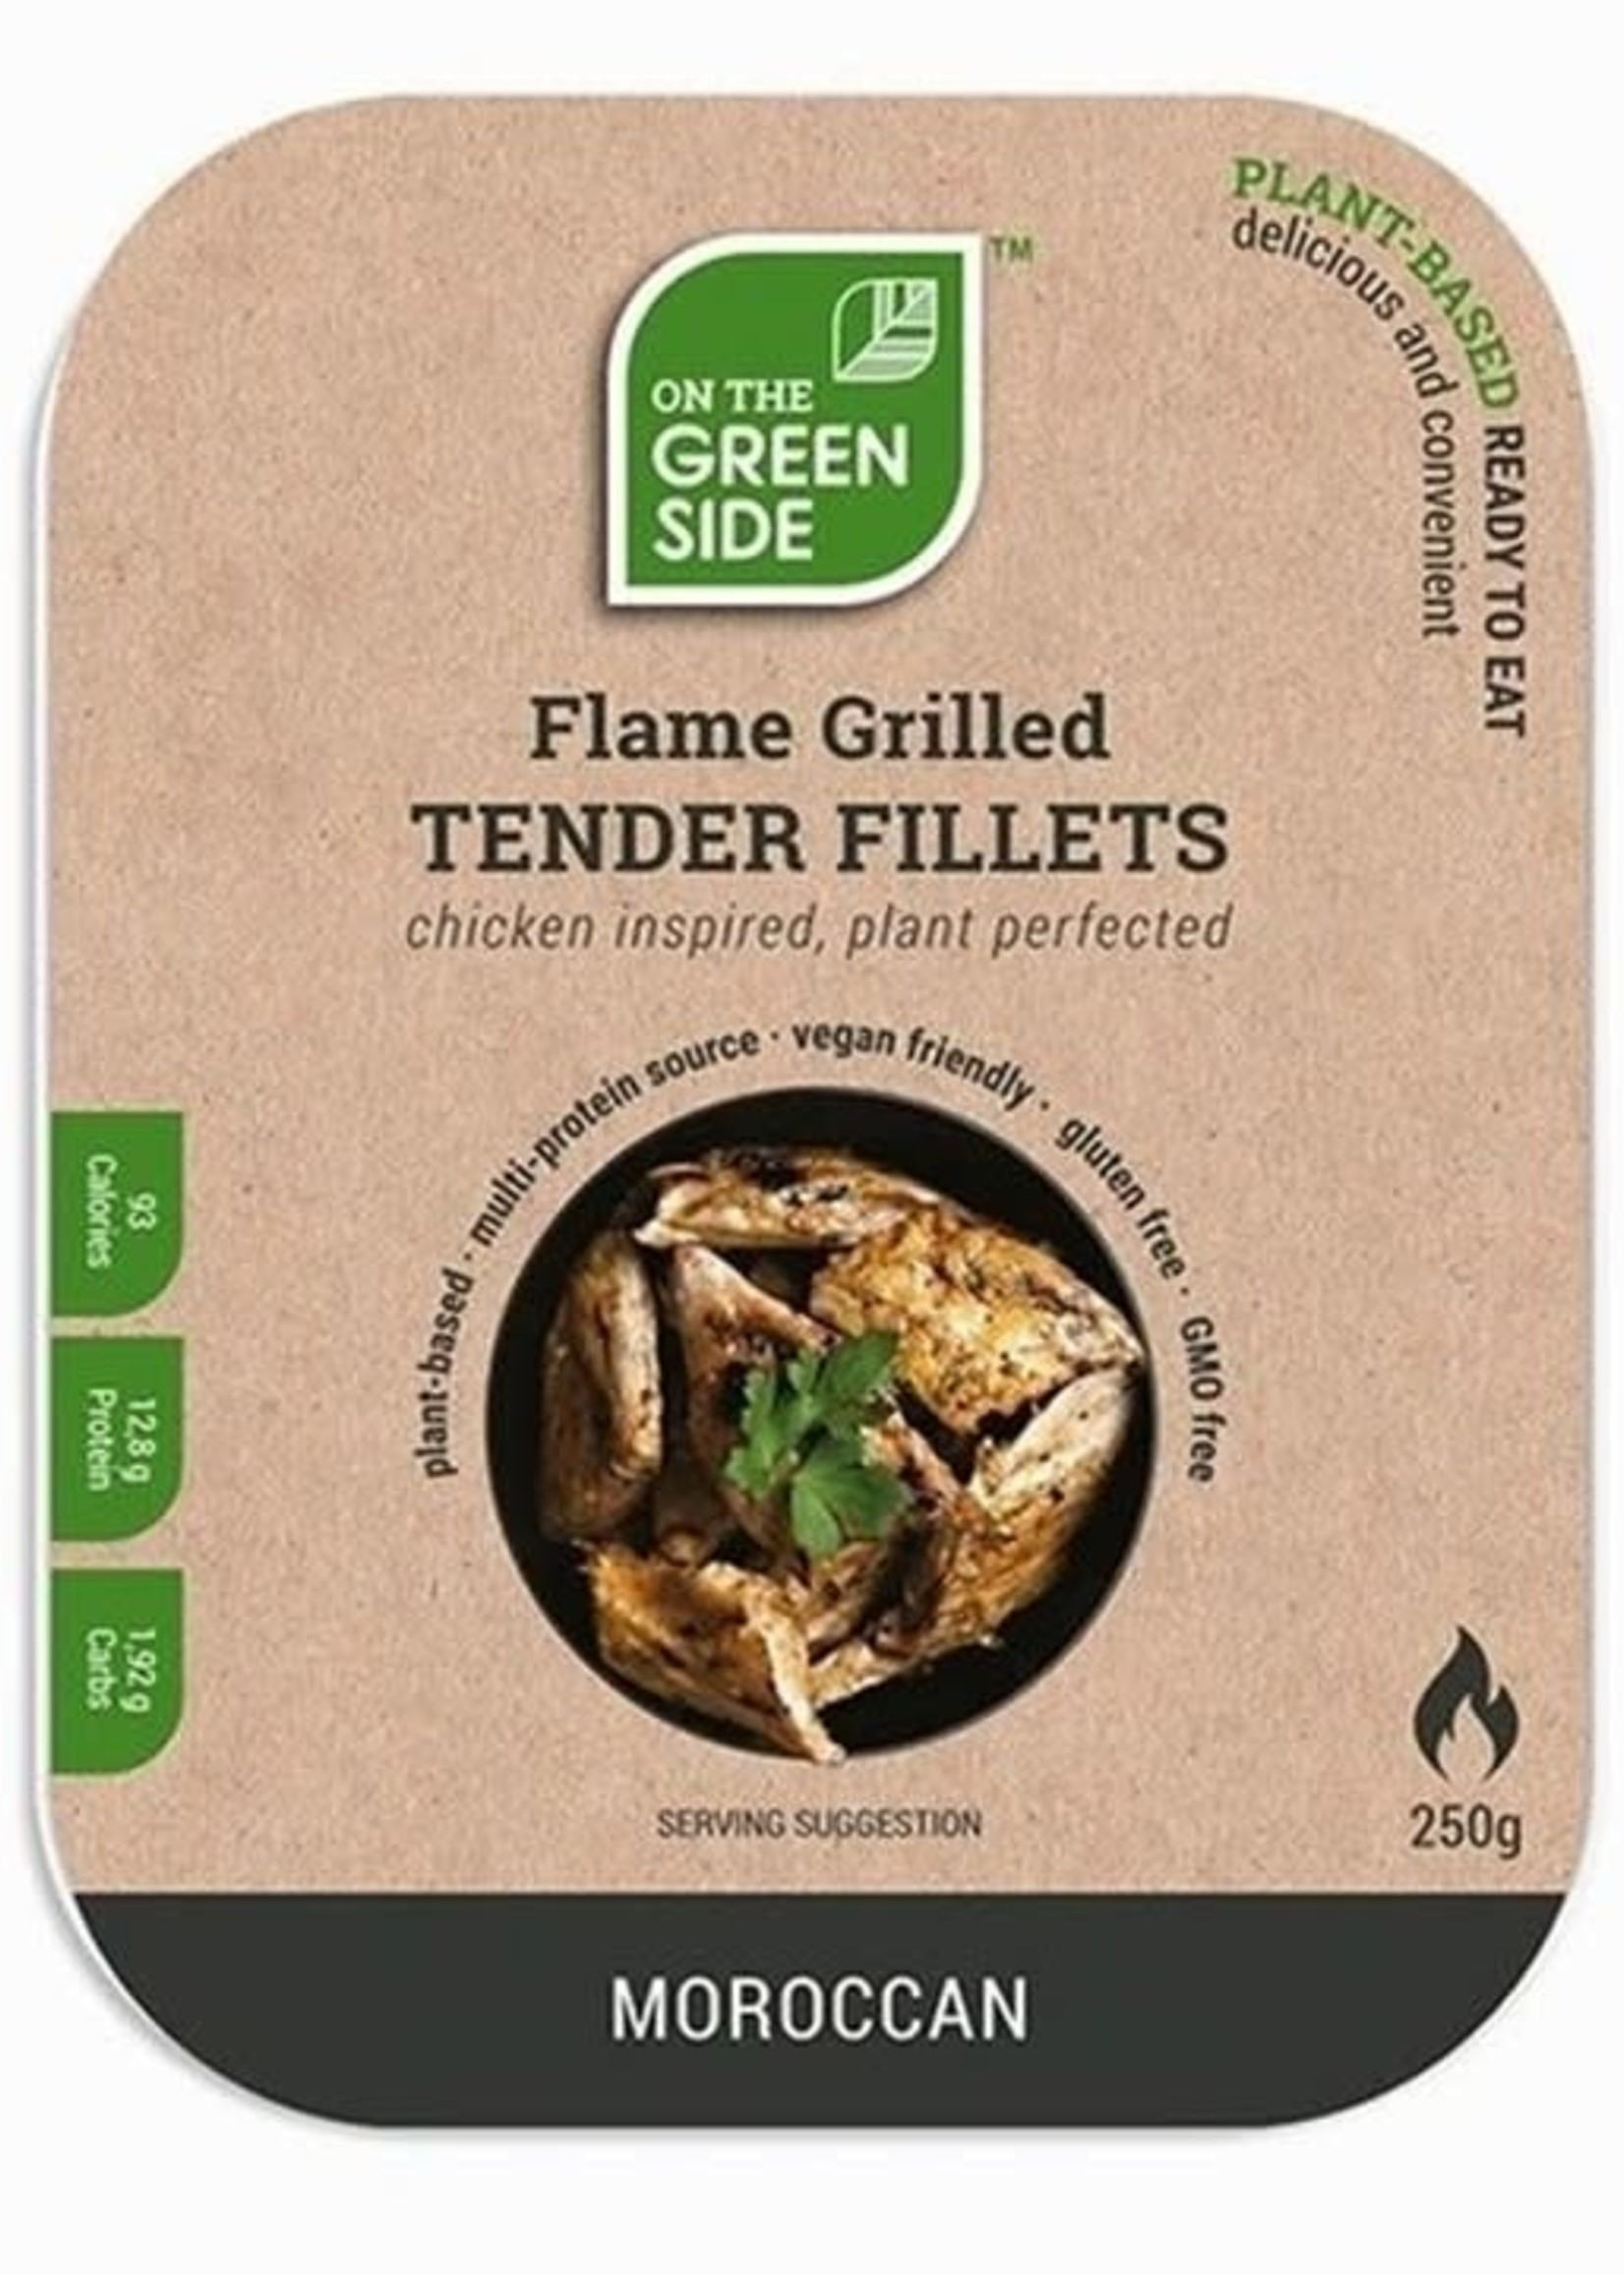 On The Green Side Tender Fillets - moroccan 250g